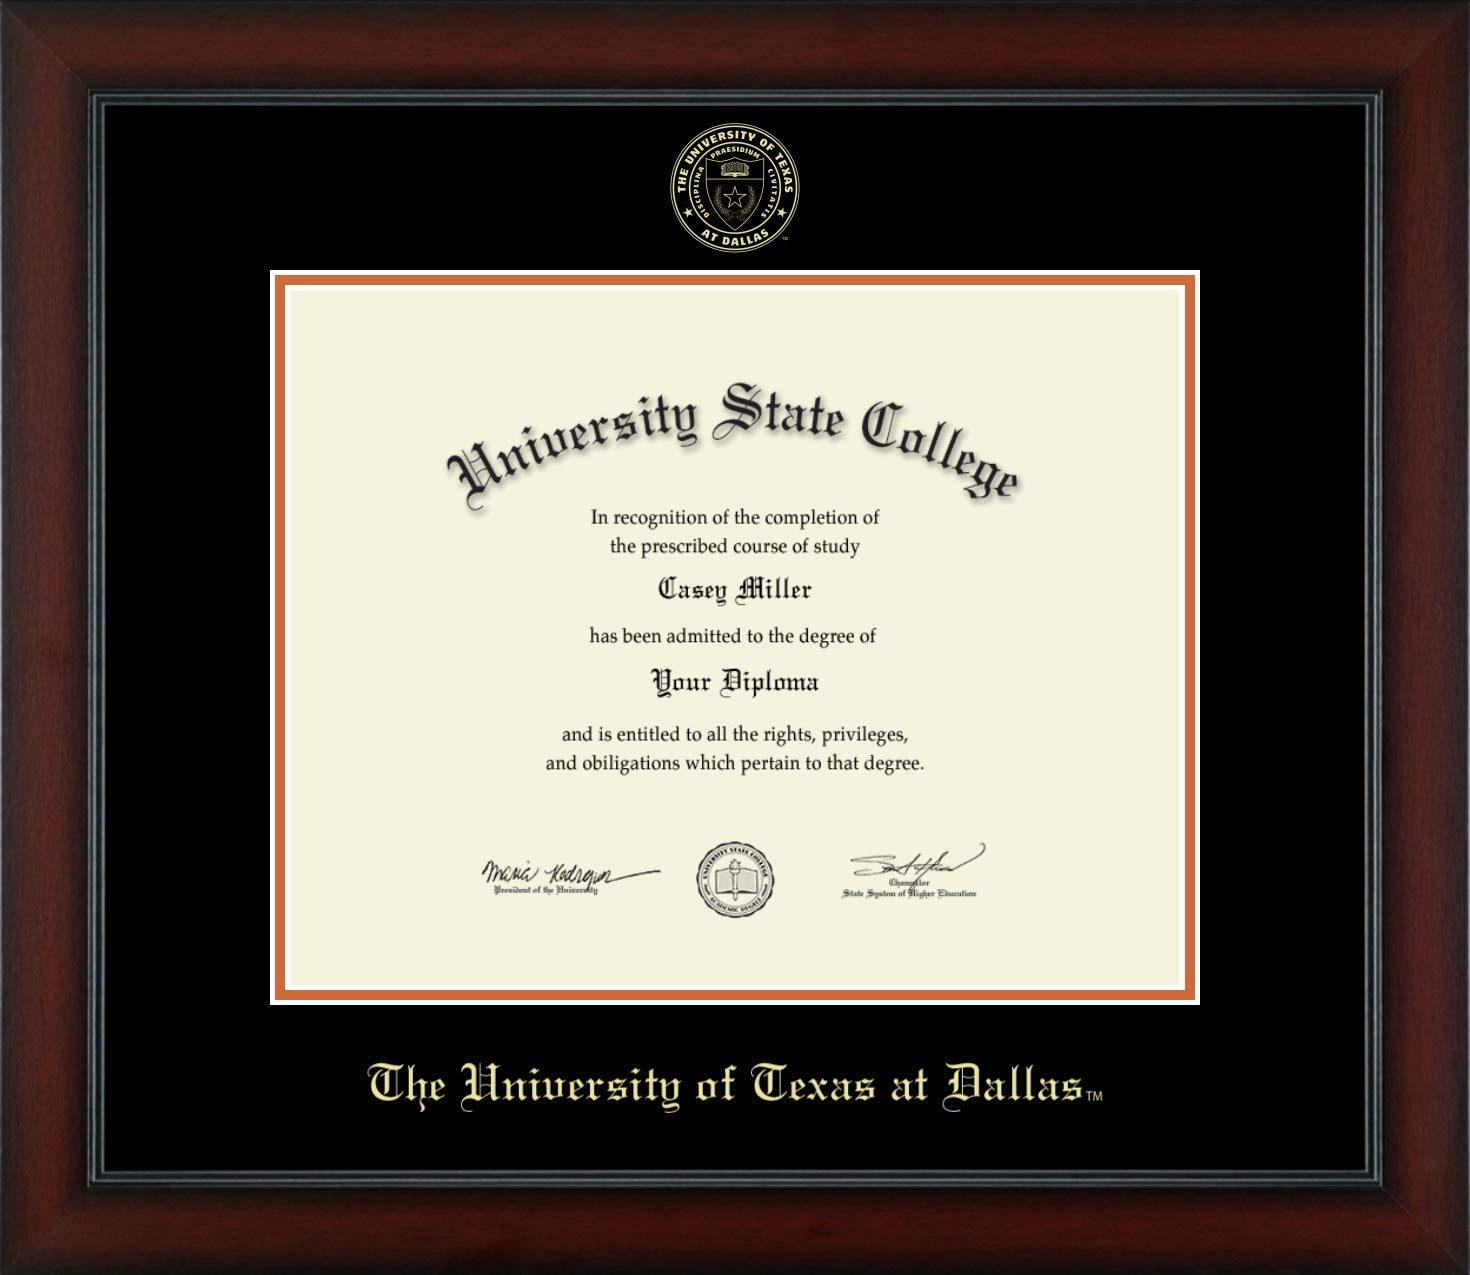 The University of Texas at Dallas - Officially Licensed - Gold Embossed Diploma Frame - Diploma Size 14'' x 11''